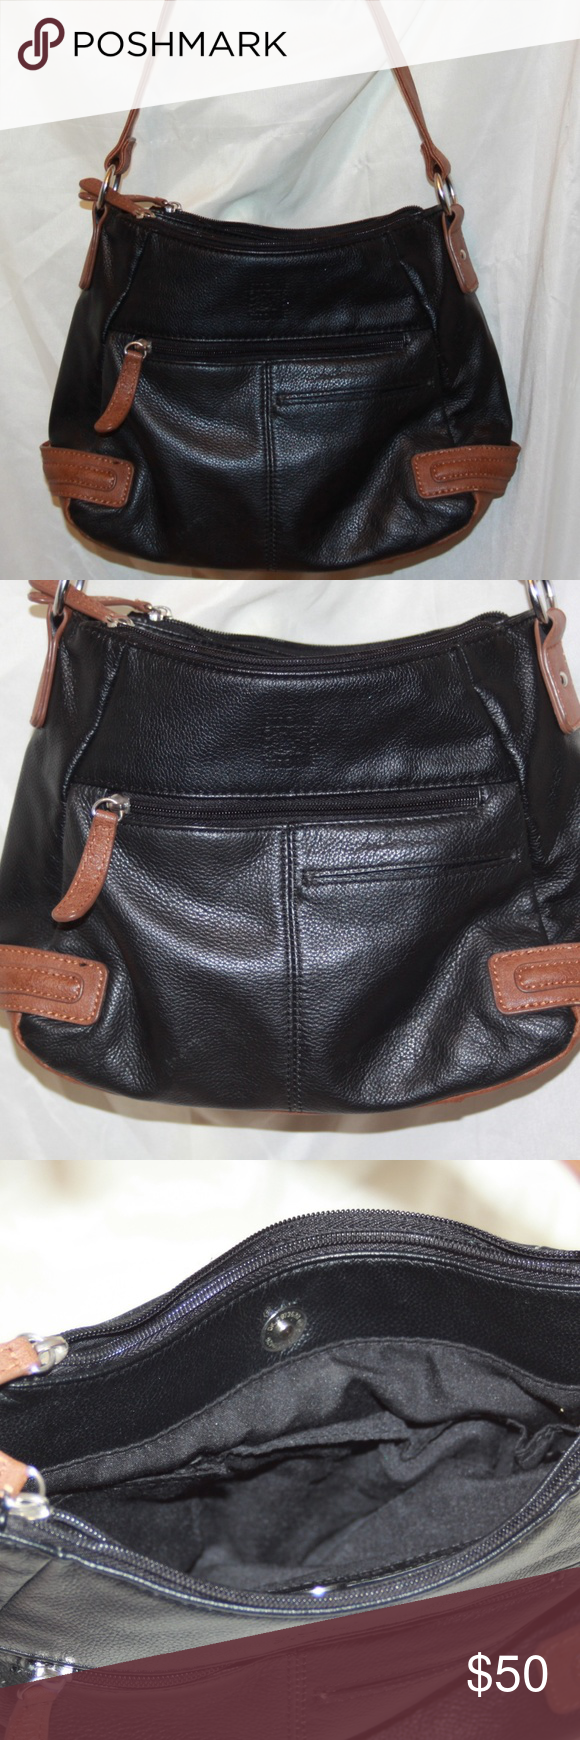 Stone Company Genuine Leather Handbag Purse Measures 8h X 11w Strap 22 Inches 3 Outside Pockets 2 Zip